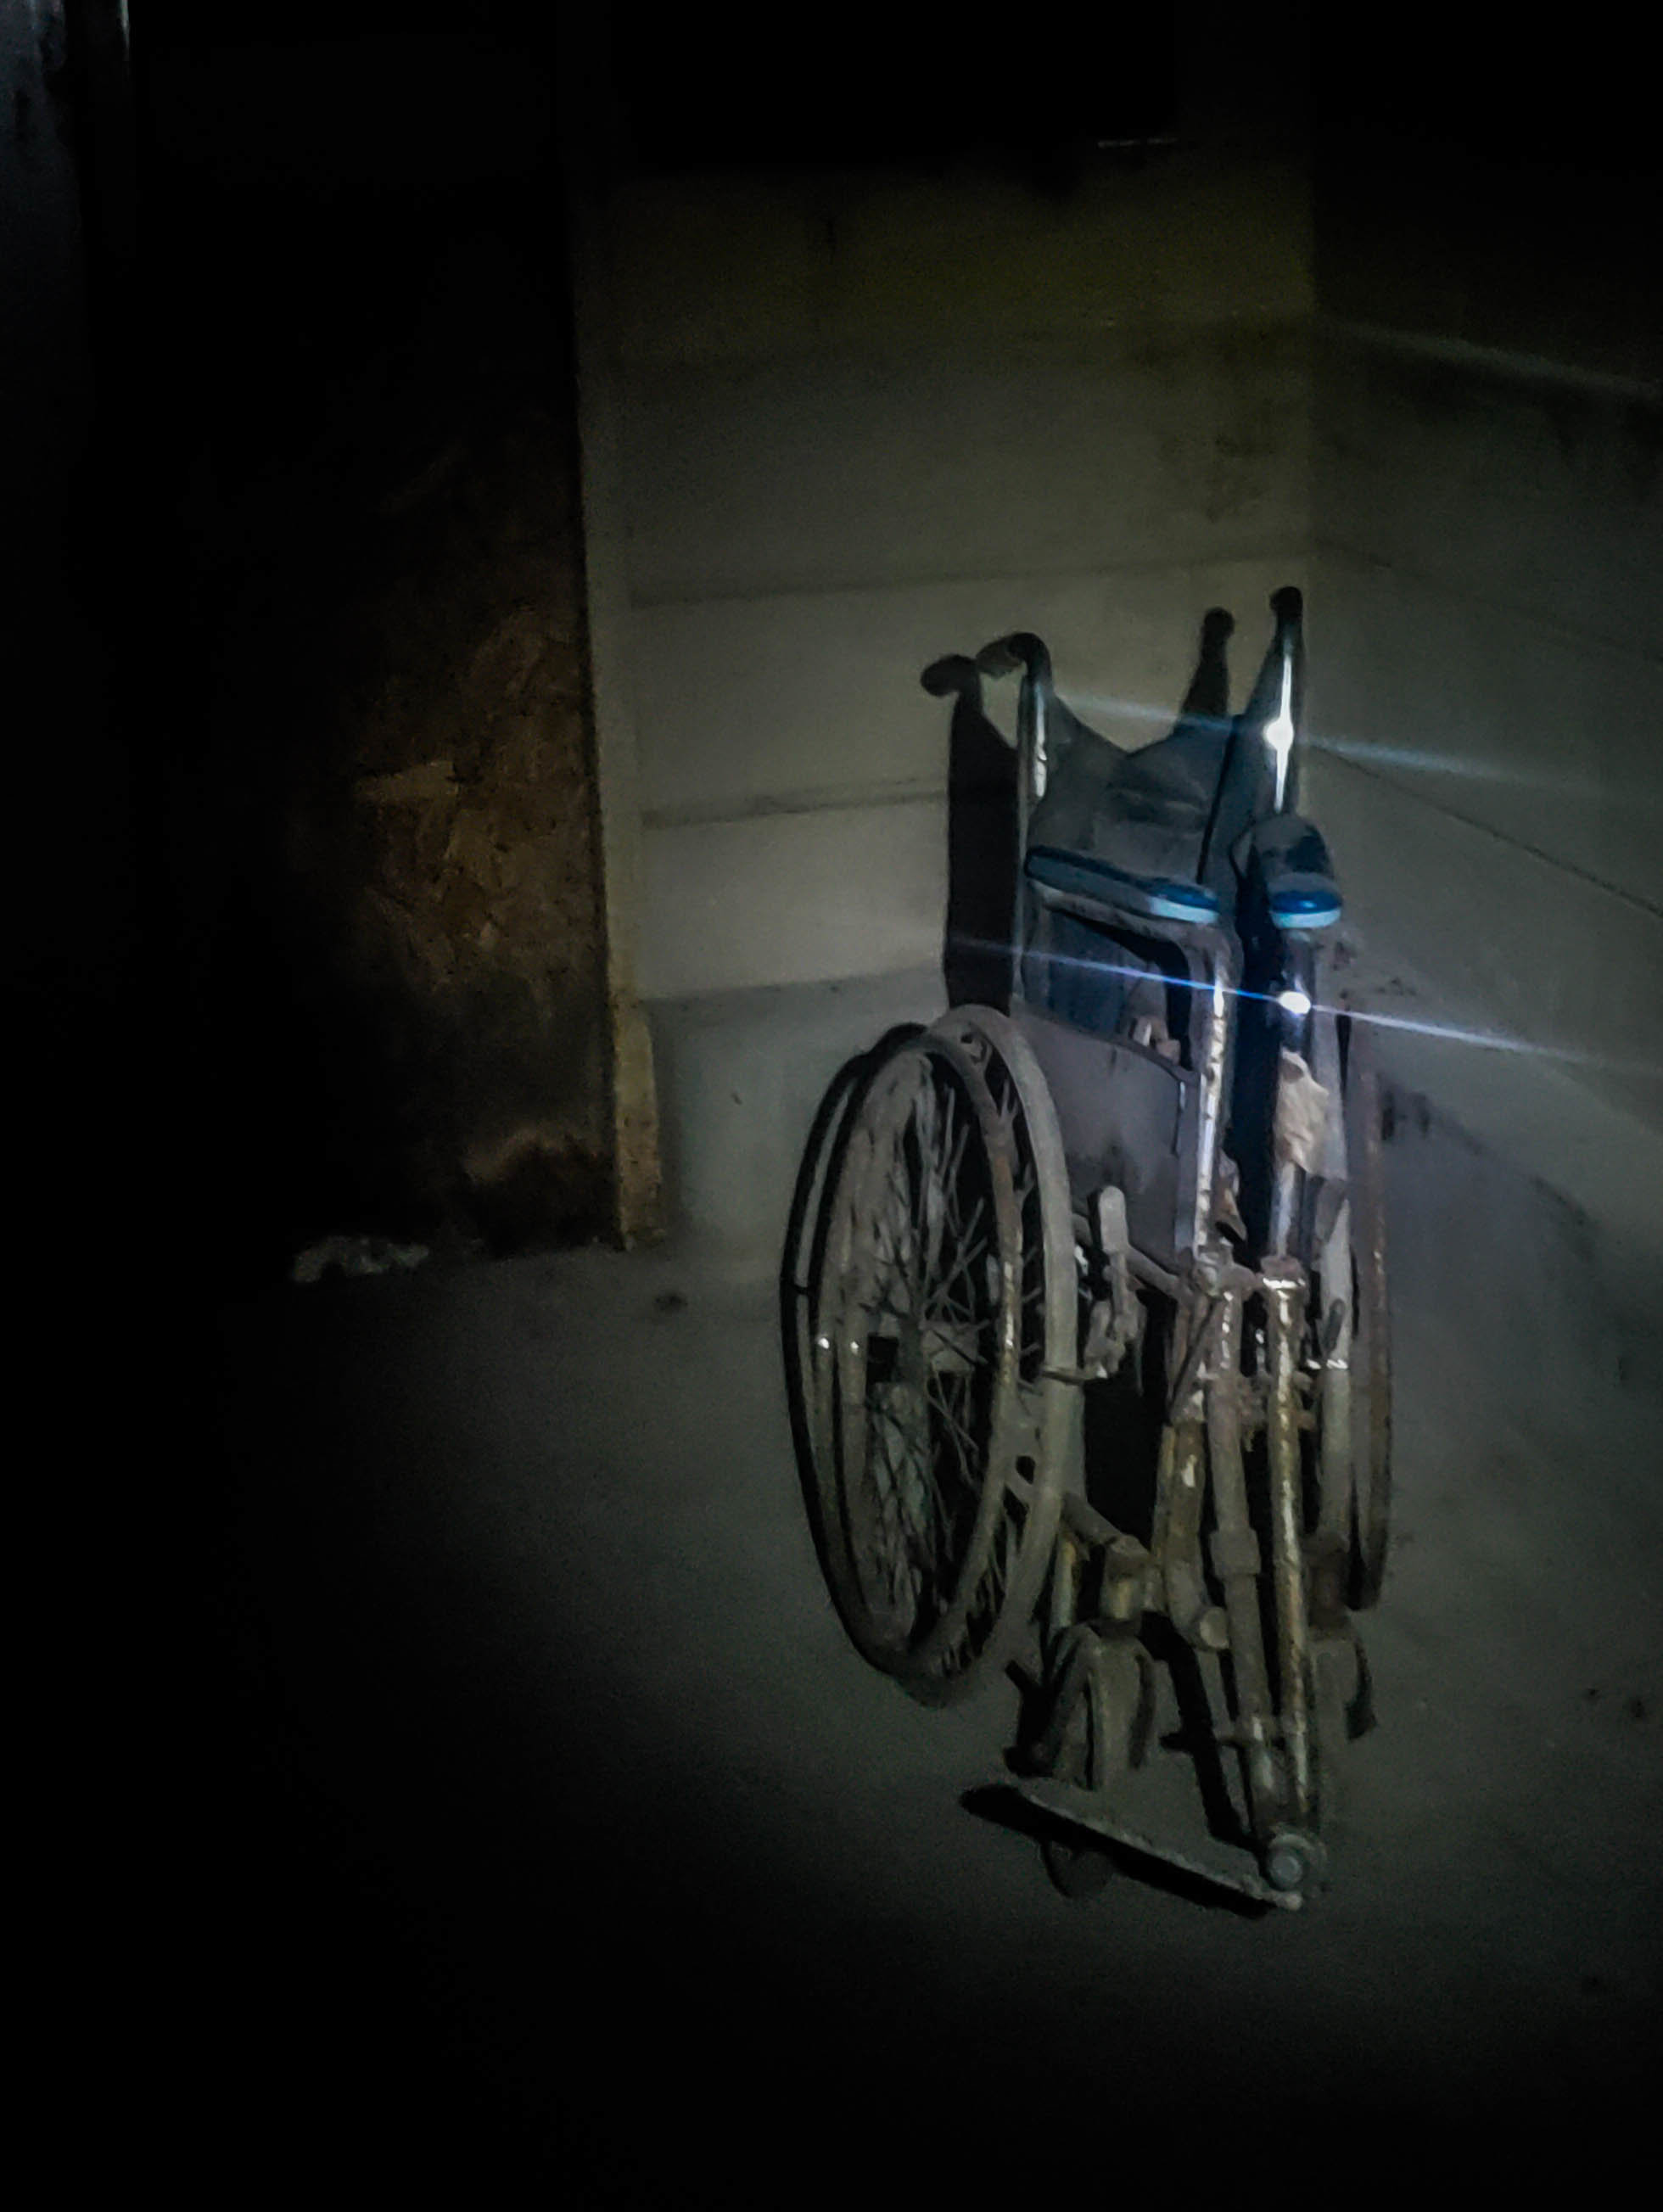 Abandoned wheelchair seen in the tunnels during overnight at Pennhurst